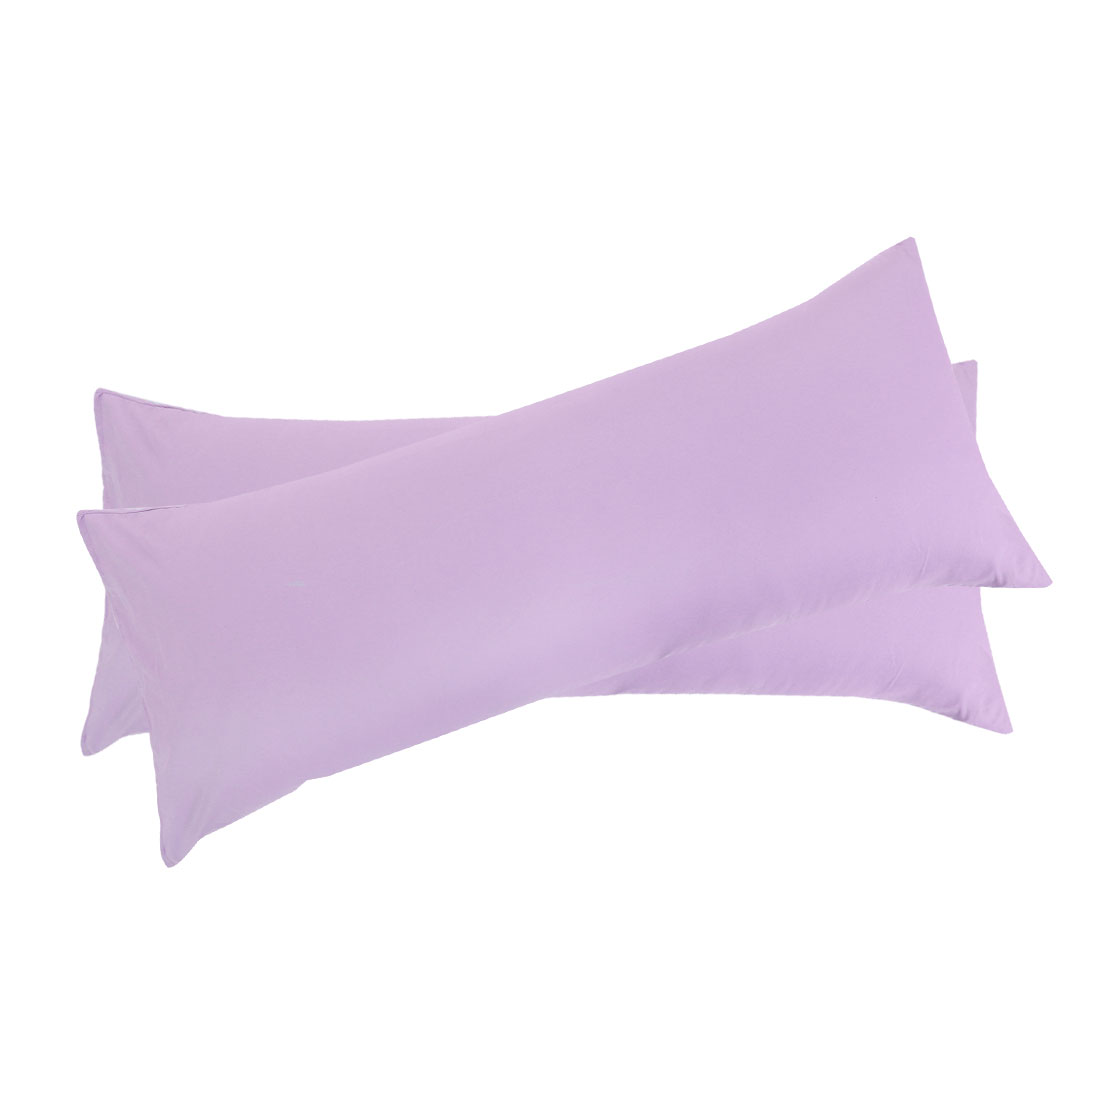 "Set of 2 Body Pillow Cover Long Soft Pillow Case for Body Pillows Violet 20""x72"" - image 7 of 7"